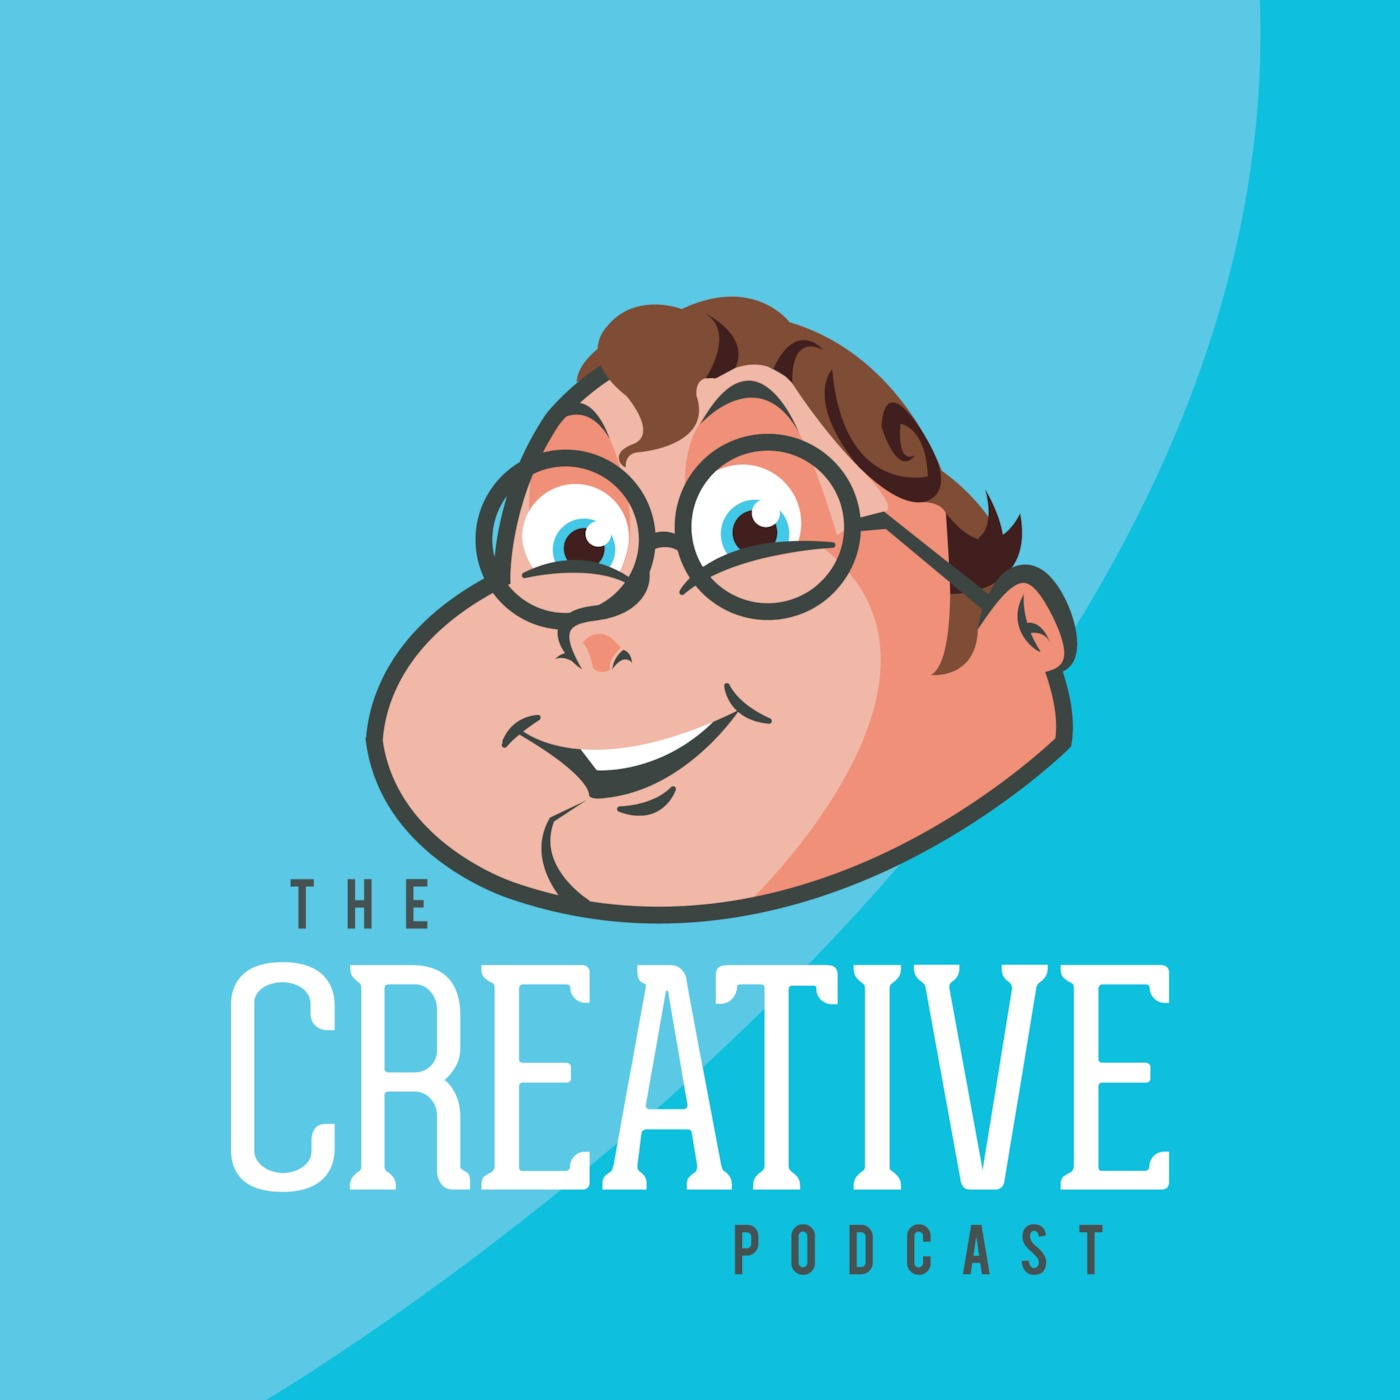 The Creative Podcast with Andrew L. Hunter